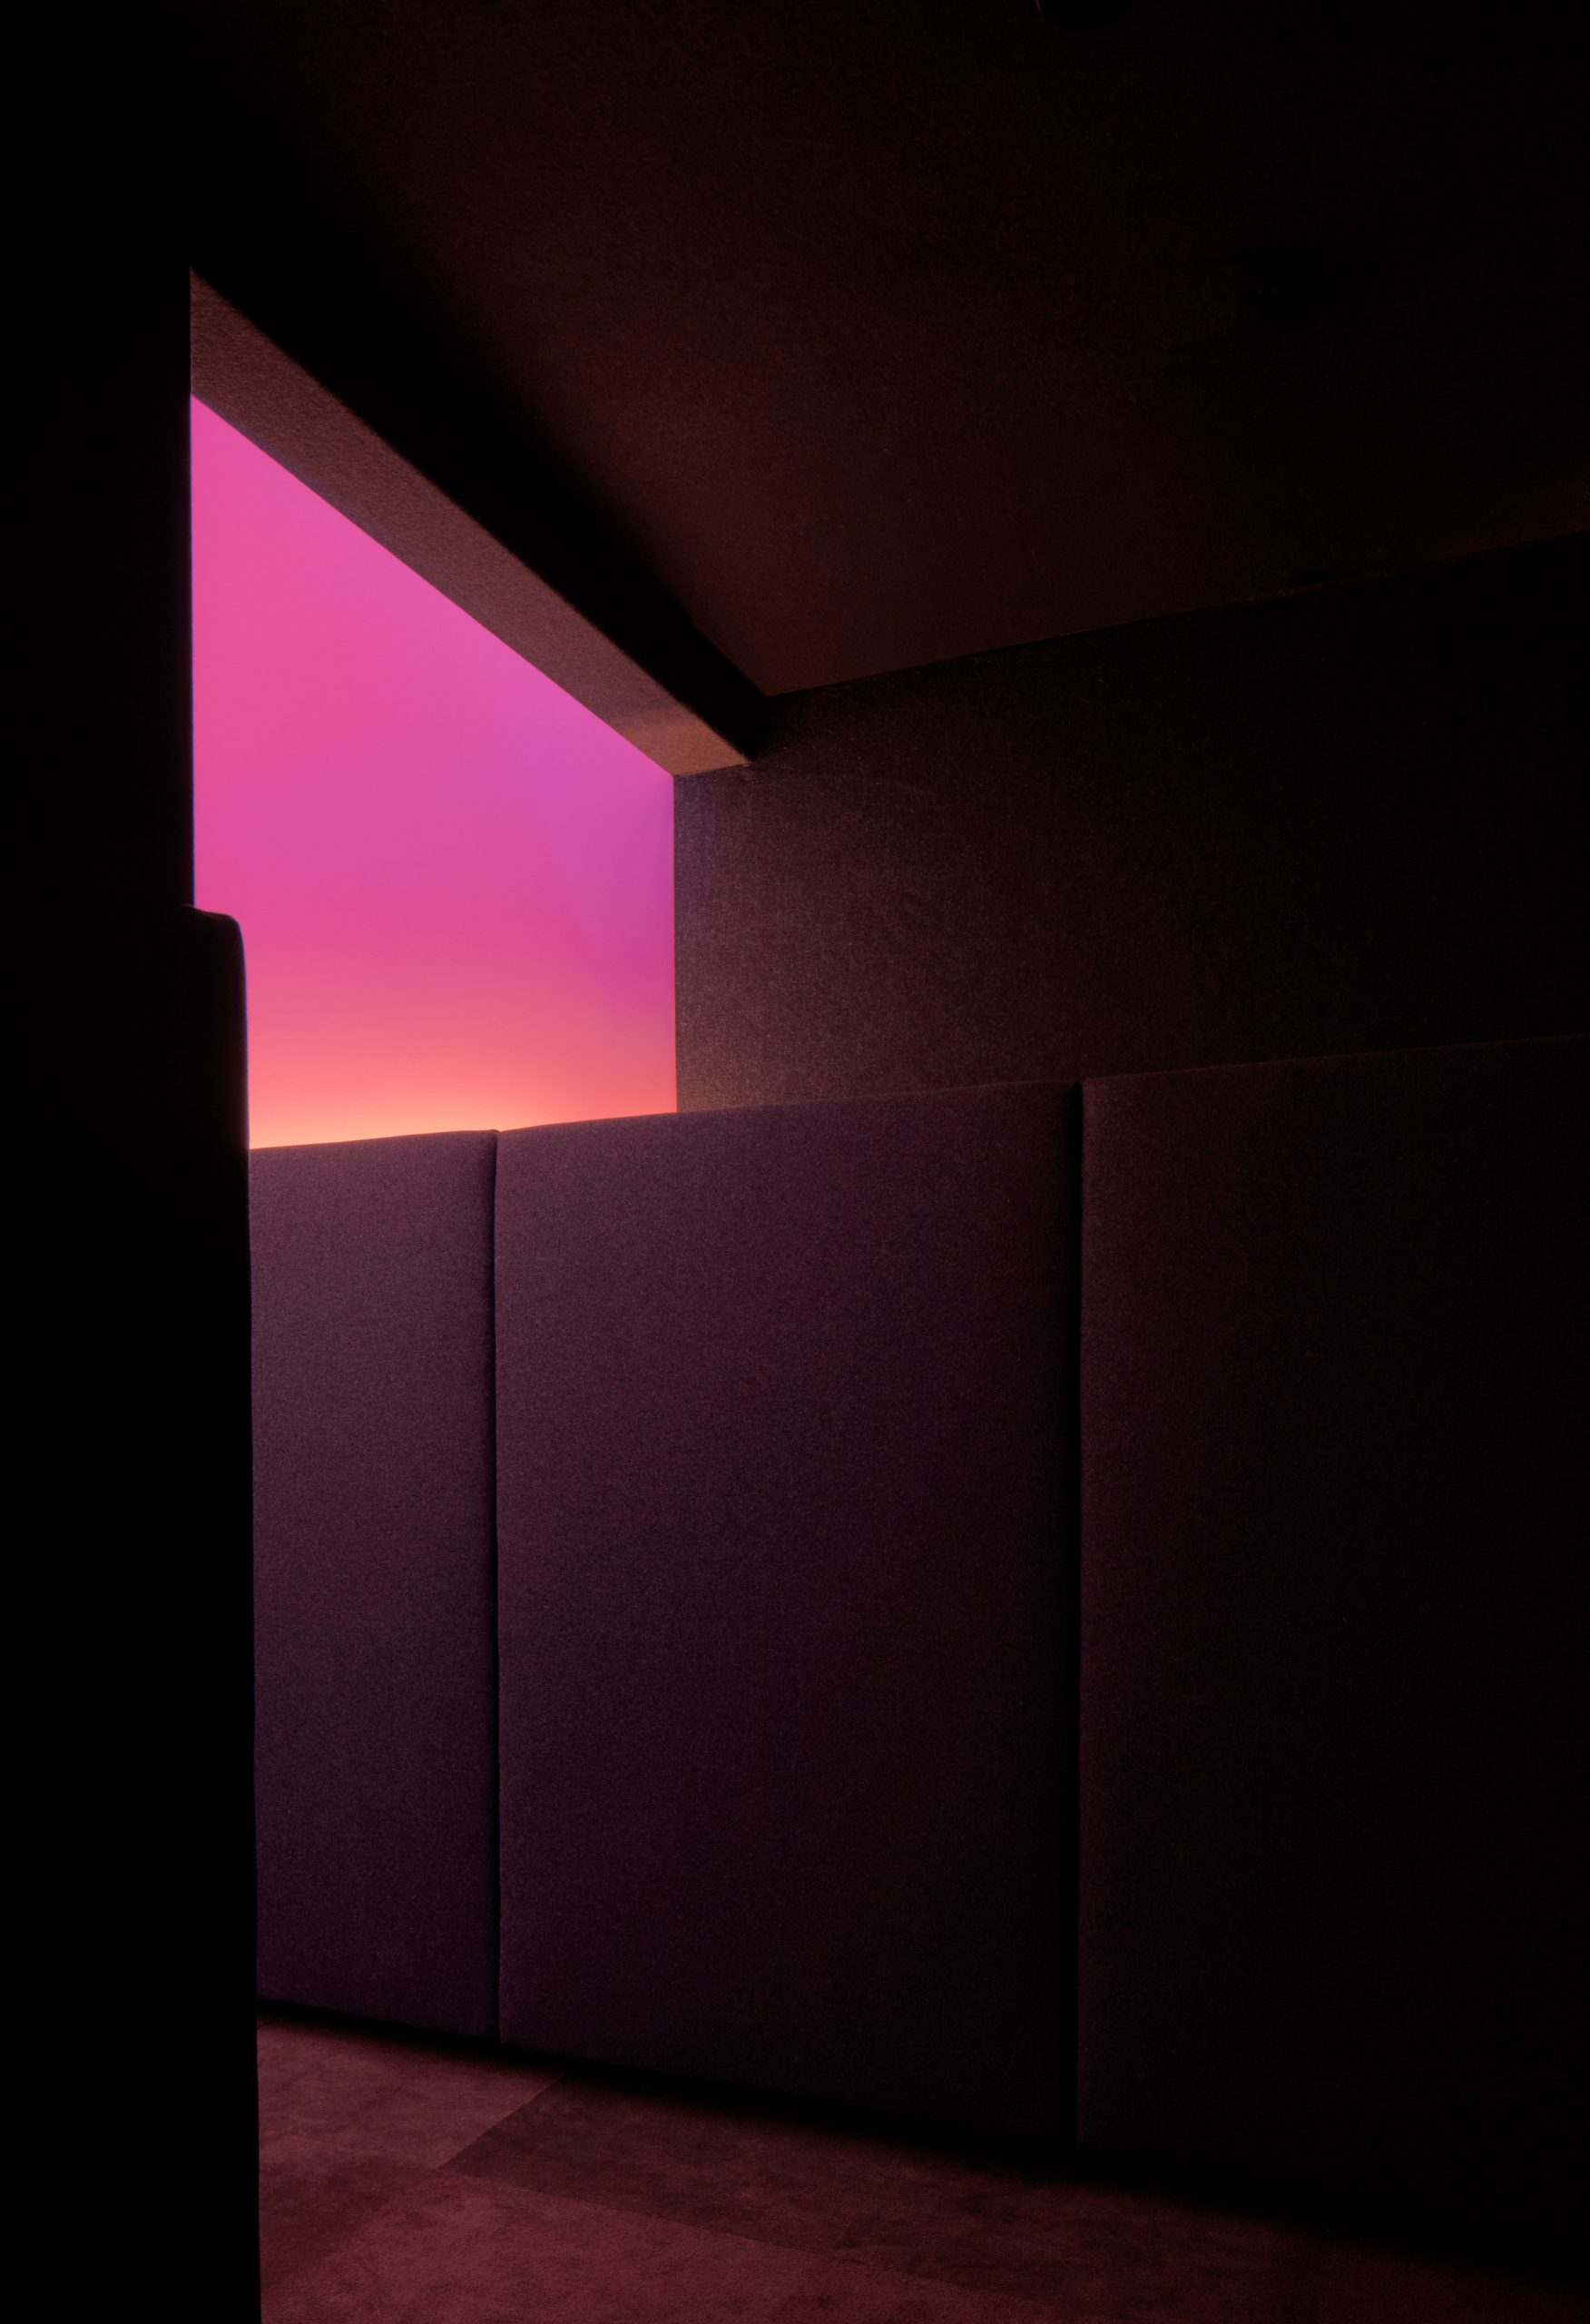 Meditation chambers feature in Office of Things' Immersive Spaces Series